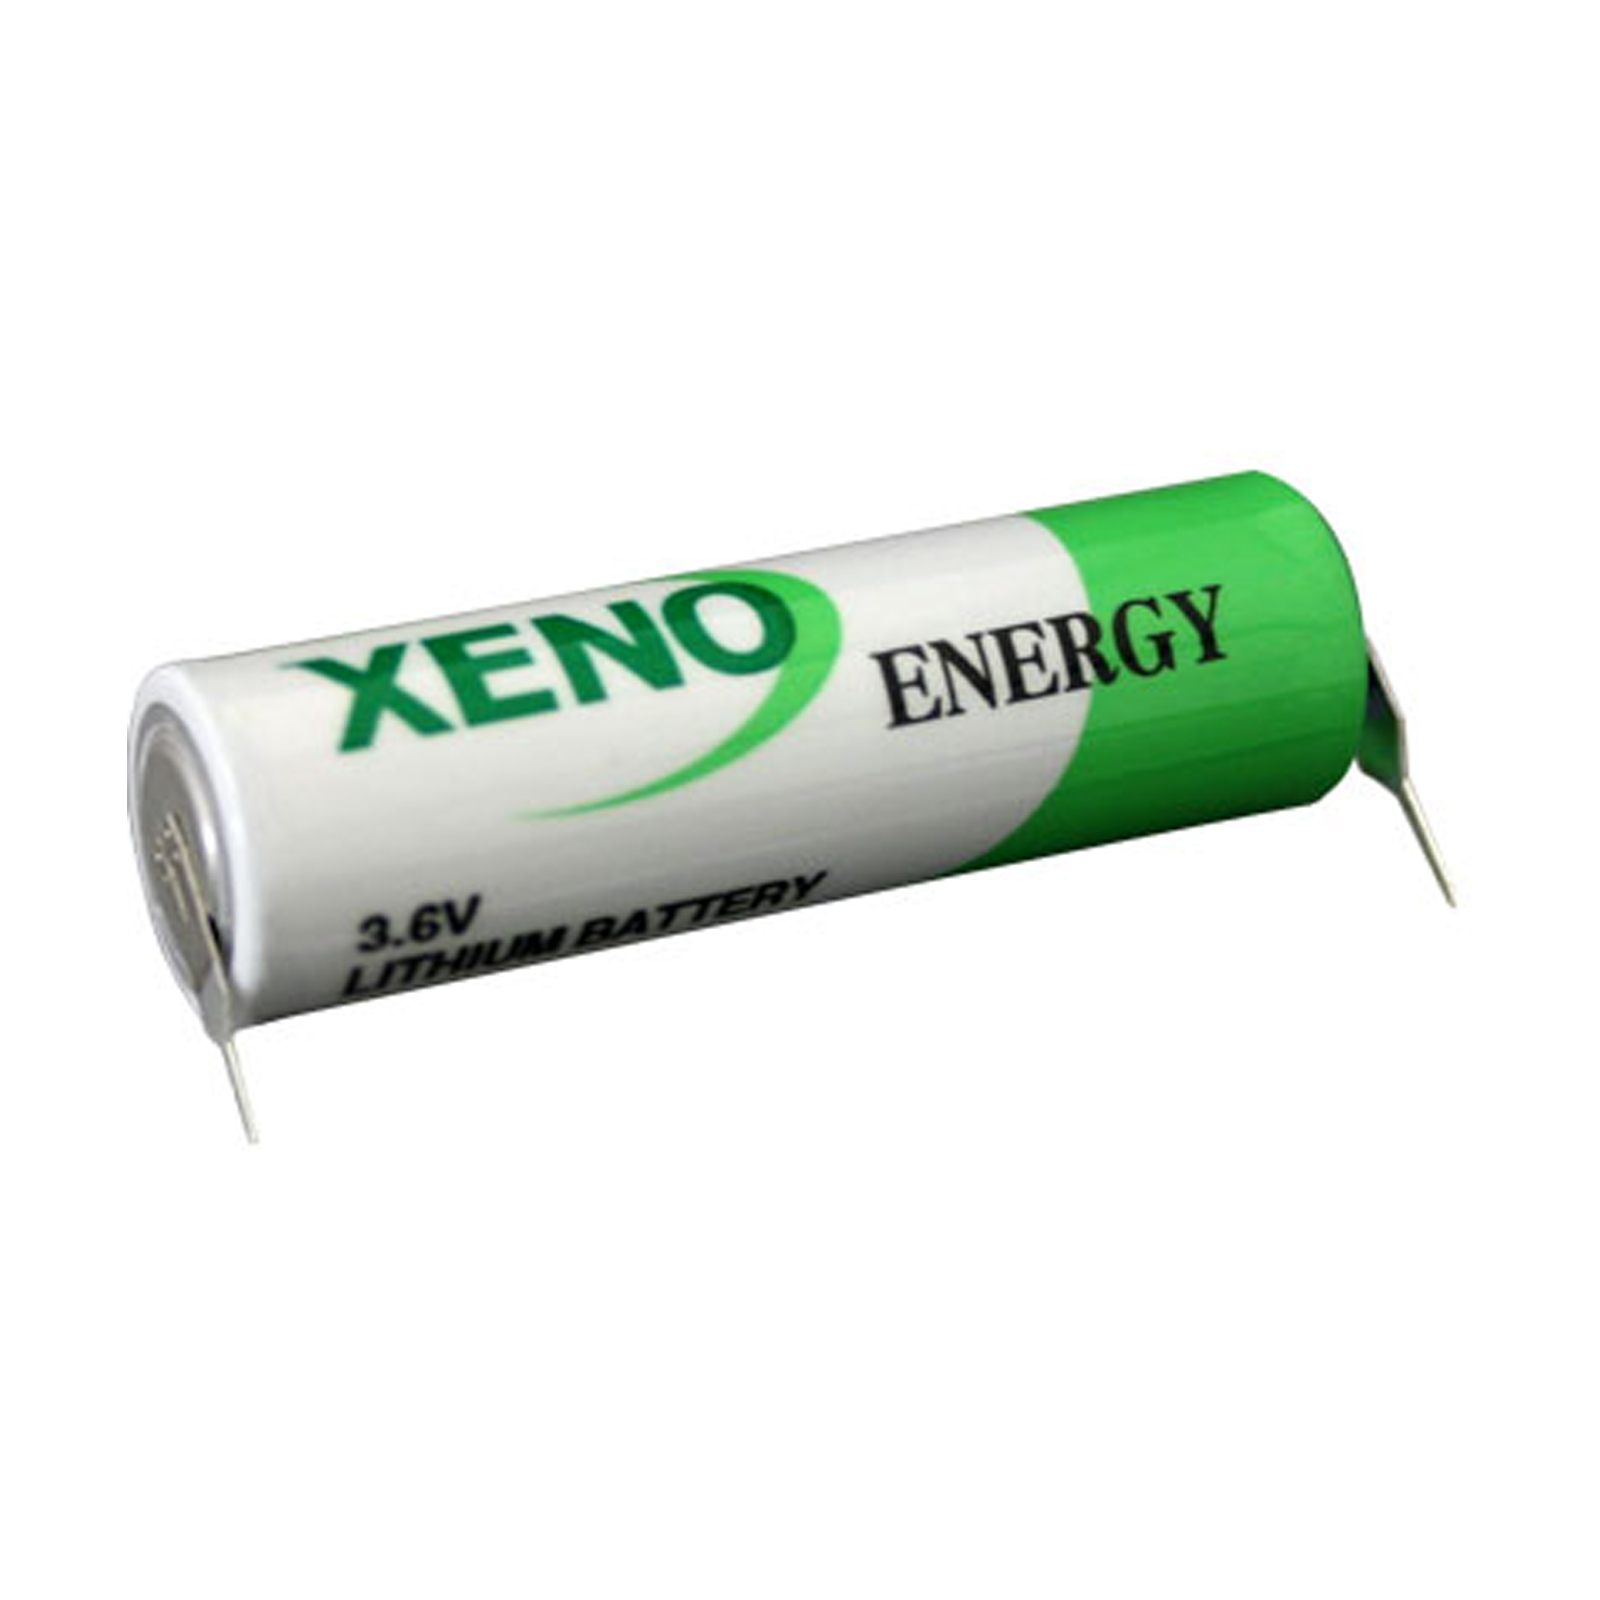 xeno er14507 aa t2 3 6v lithium thionyl chloride battery usa ship ebay. Black Bedroom Furniture Sets. Home Design Ideas